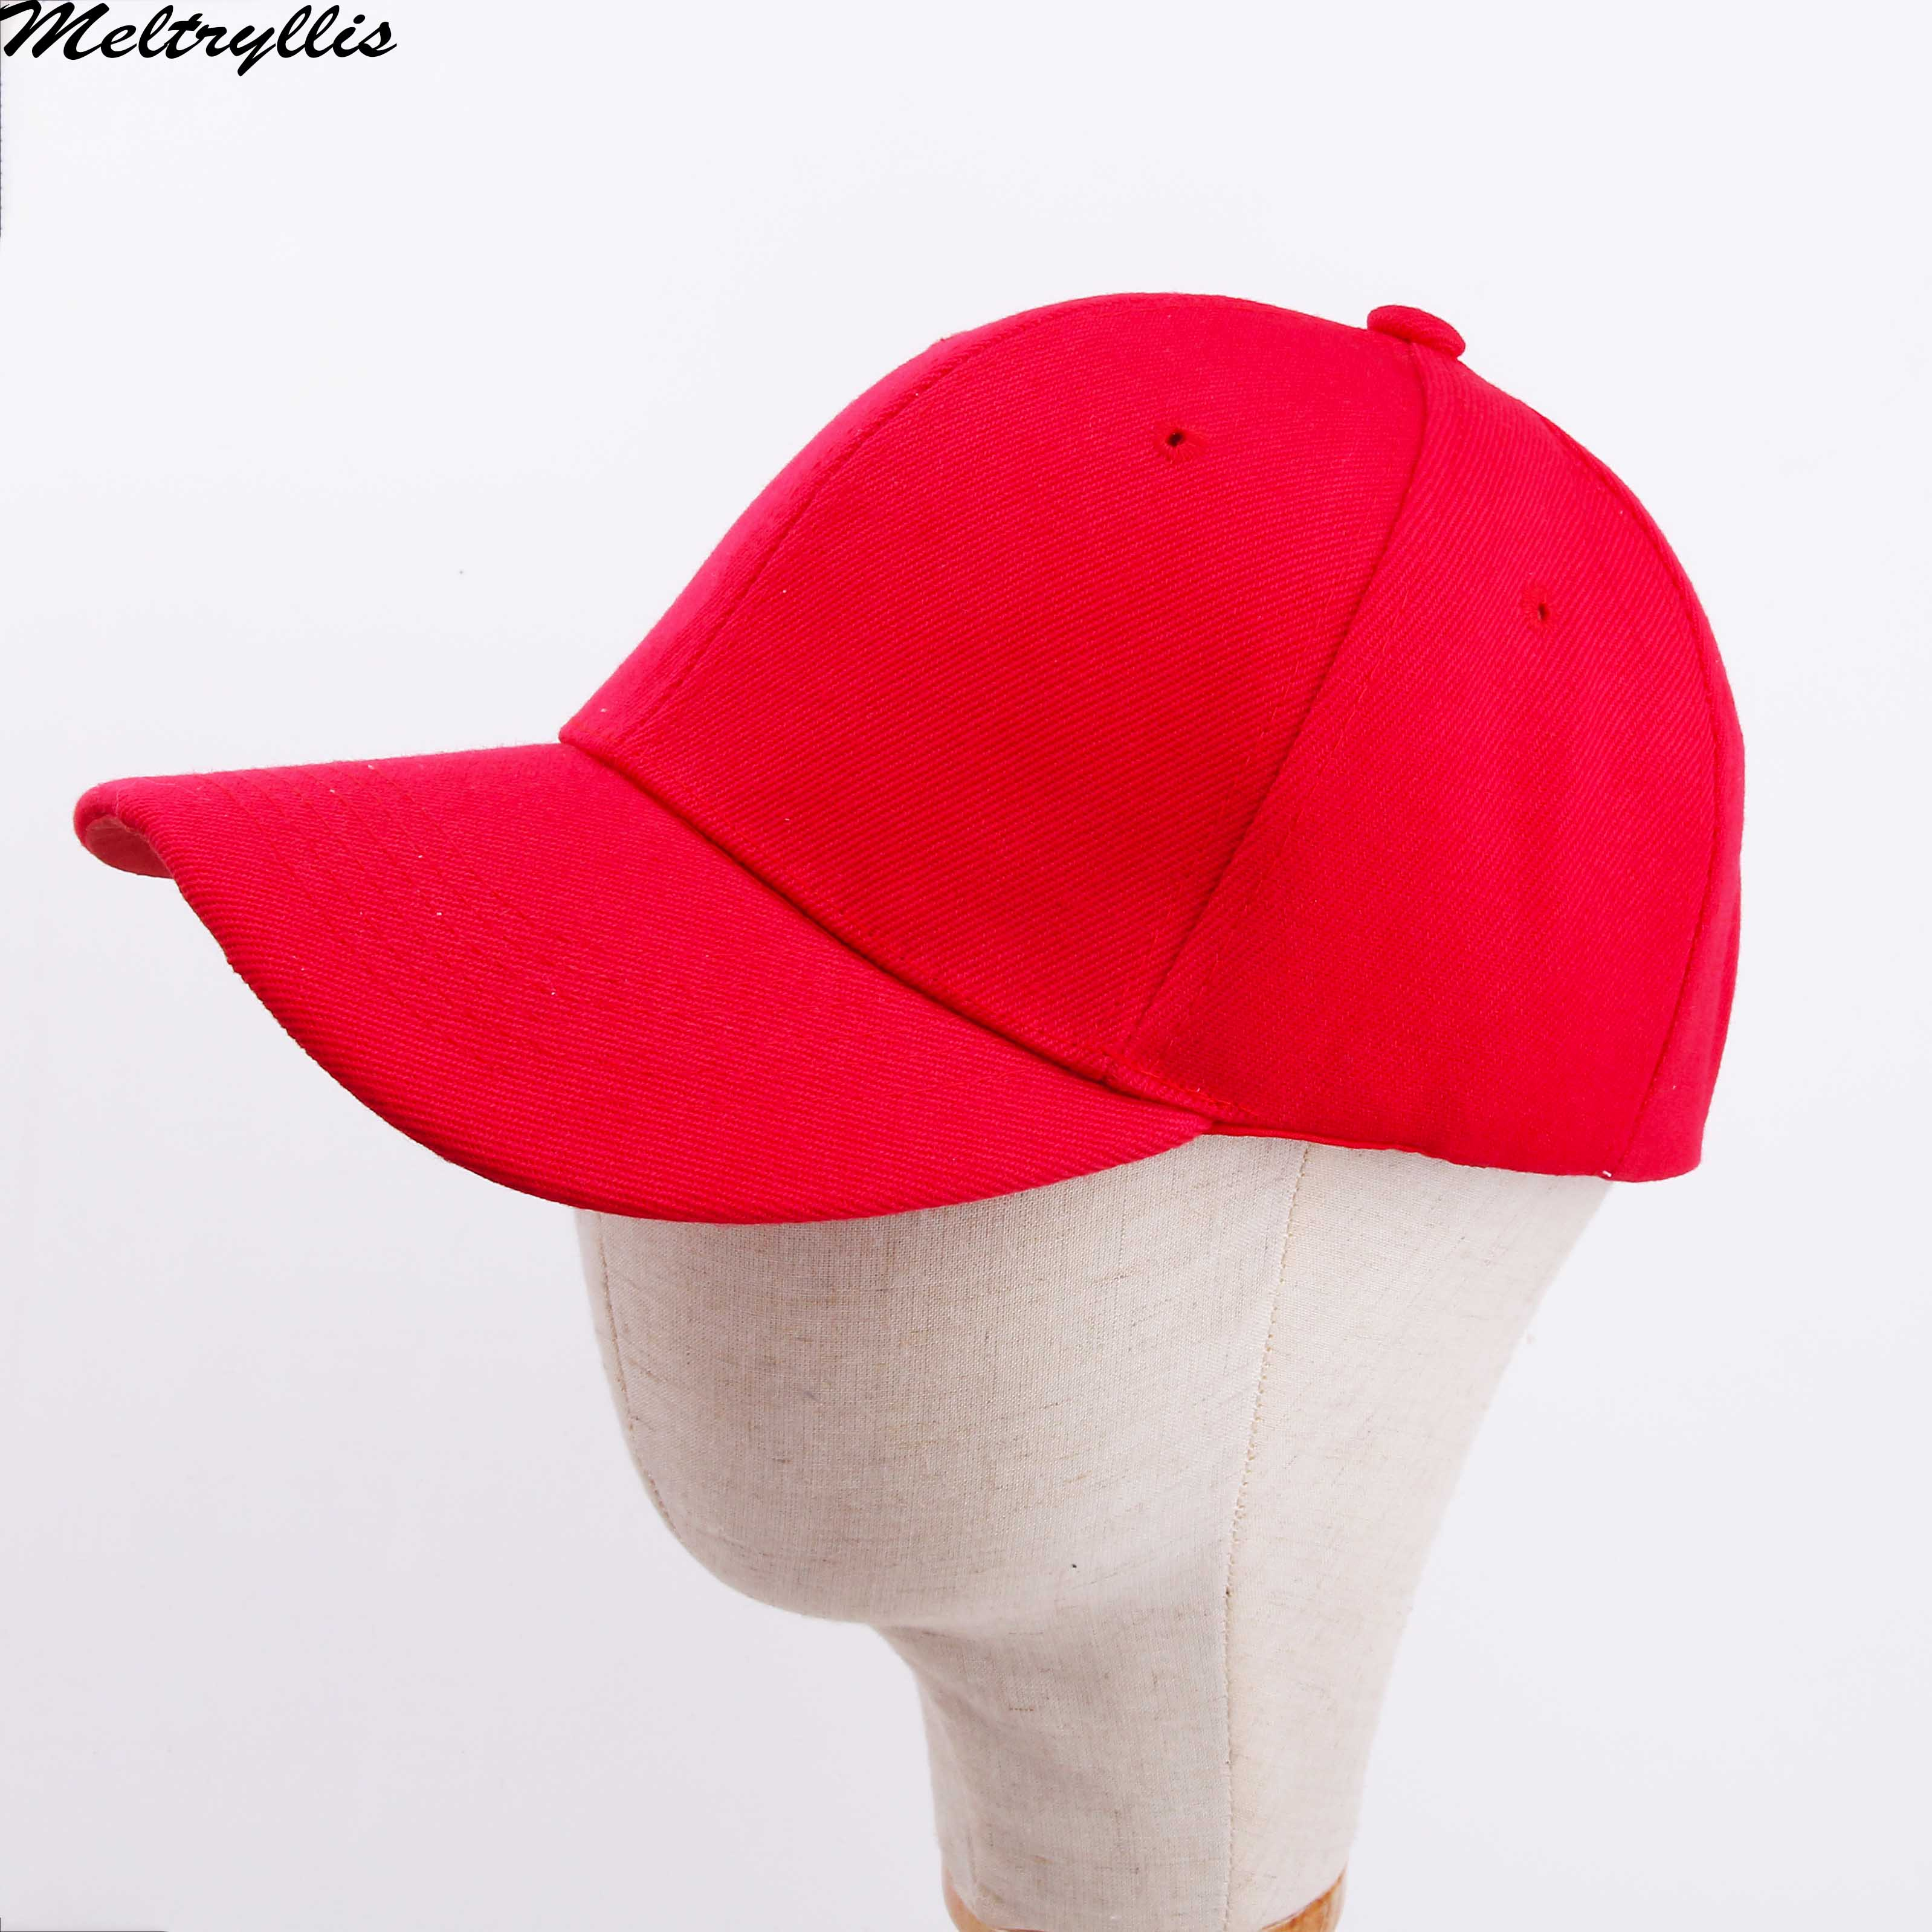 [Meltryllis] 100% Cotton Unisex Fahsion Baseball Cap Solid Color Red Hat Adjustable High Quality Mens Women Outdoor Sun Cap